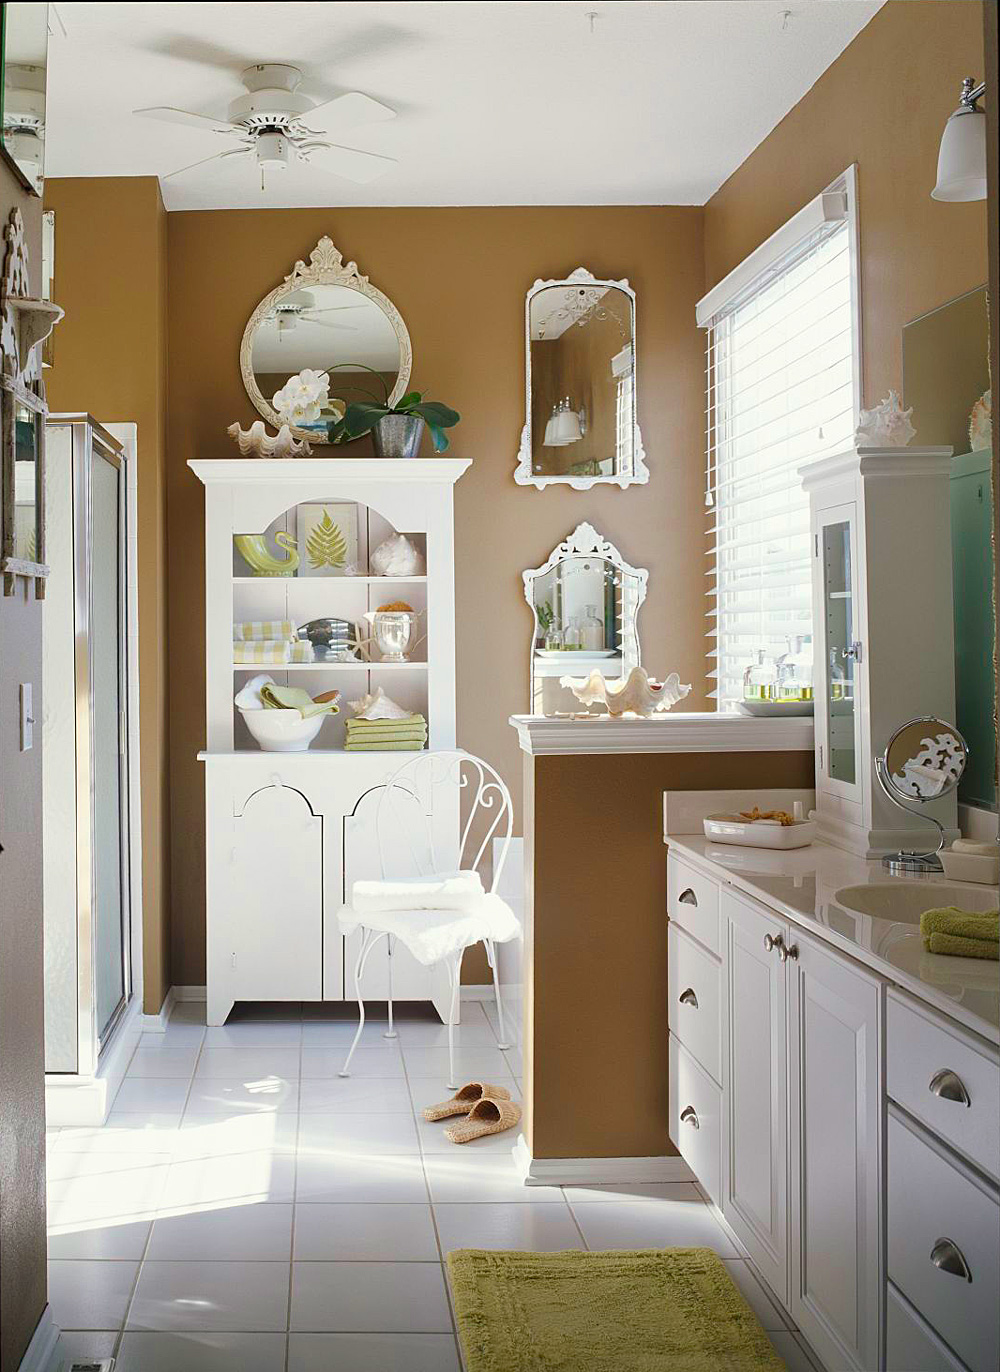 Go with freestanding storage